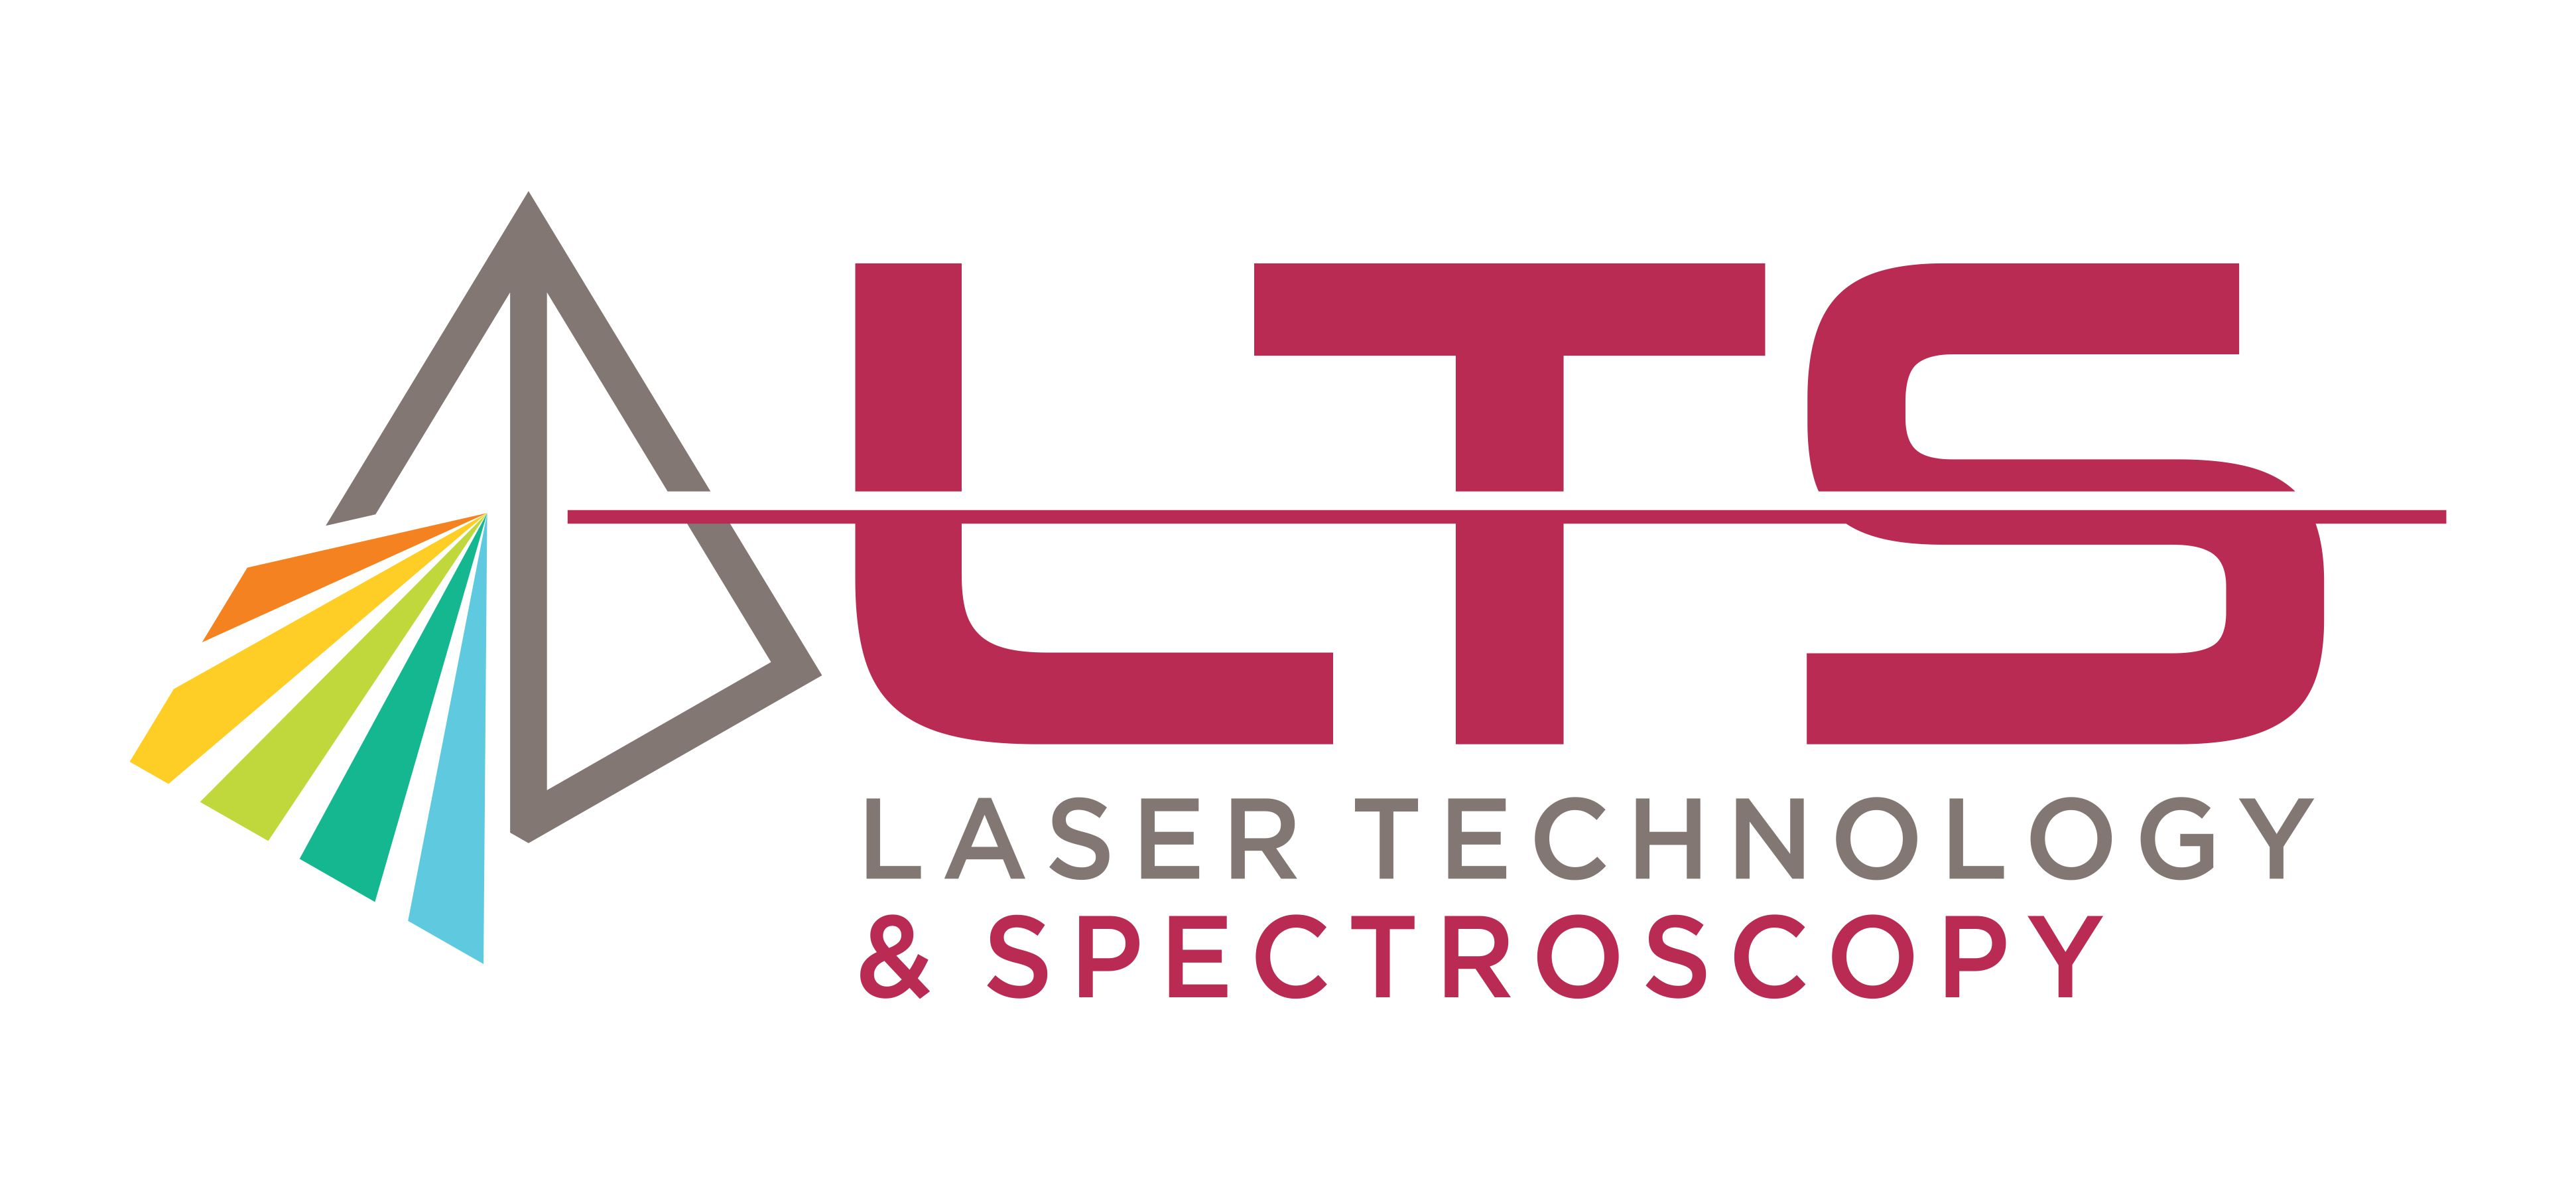 Laser Technology & Spectroscopy